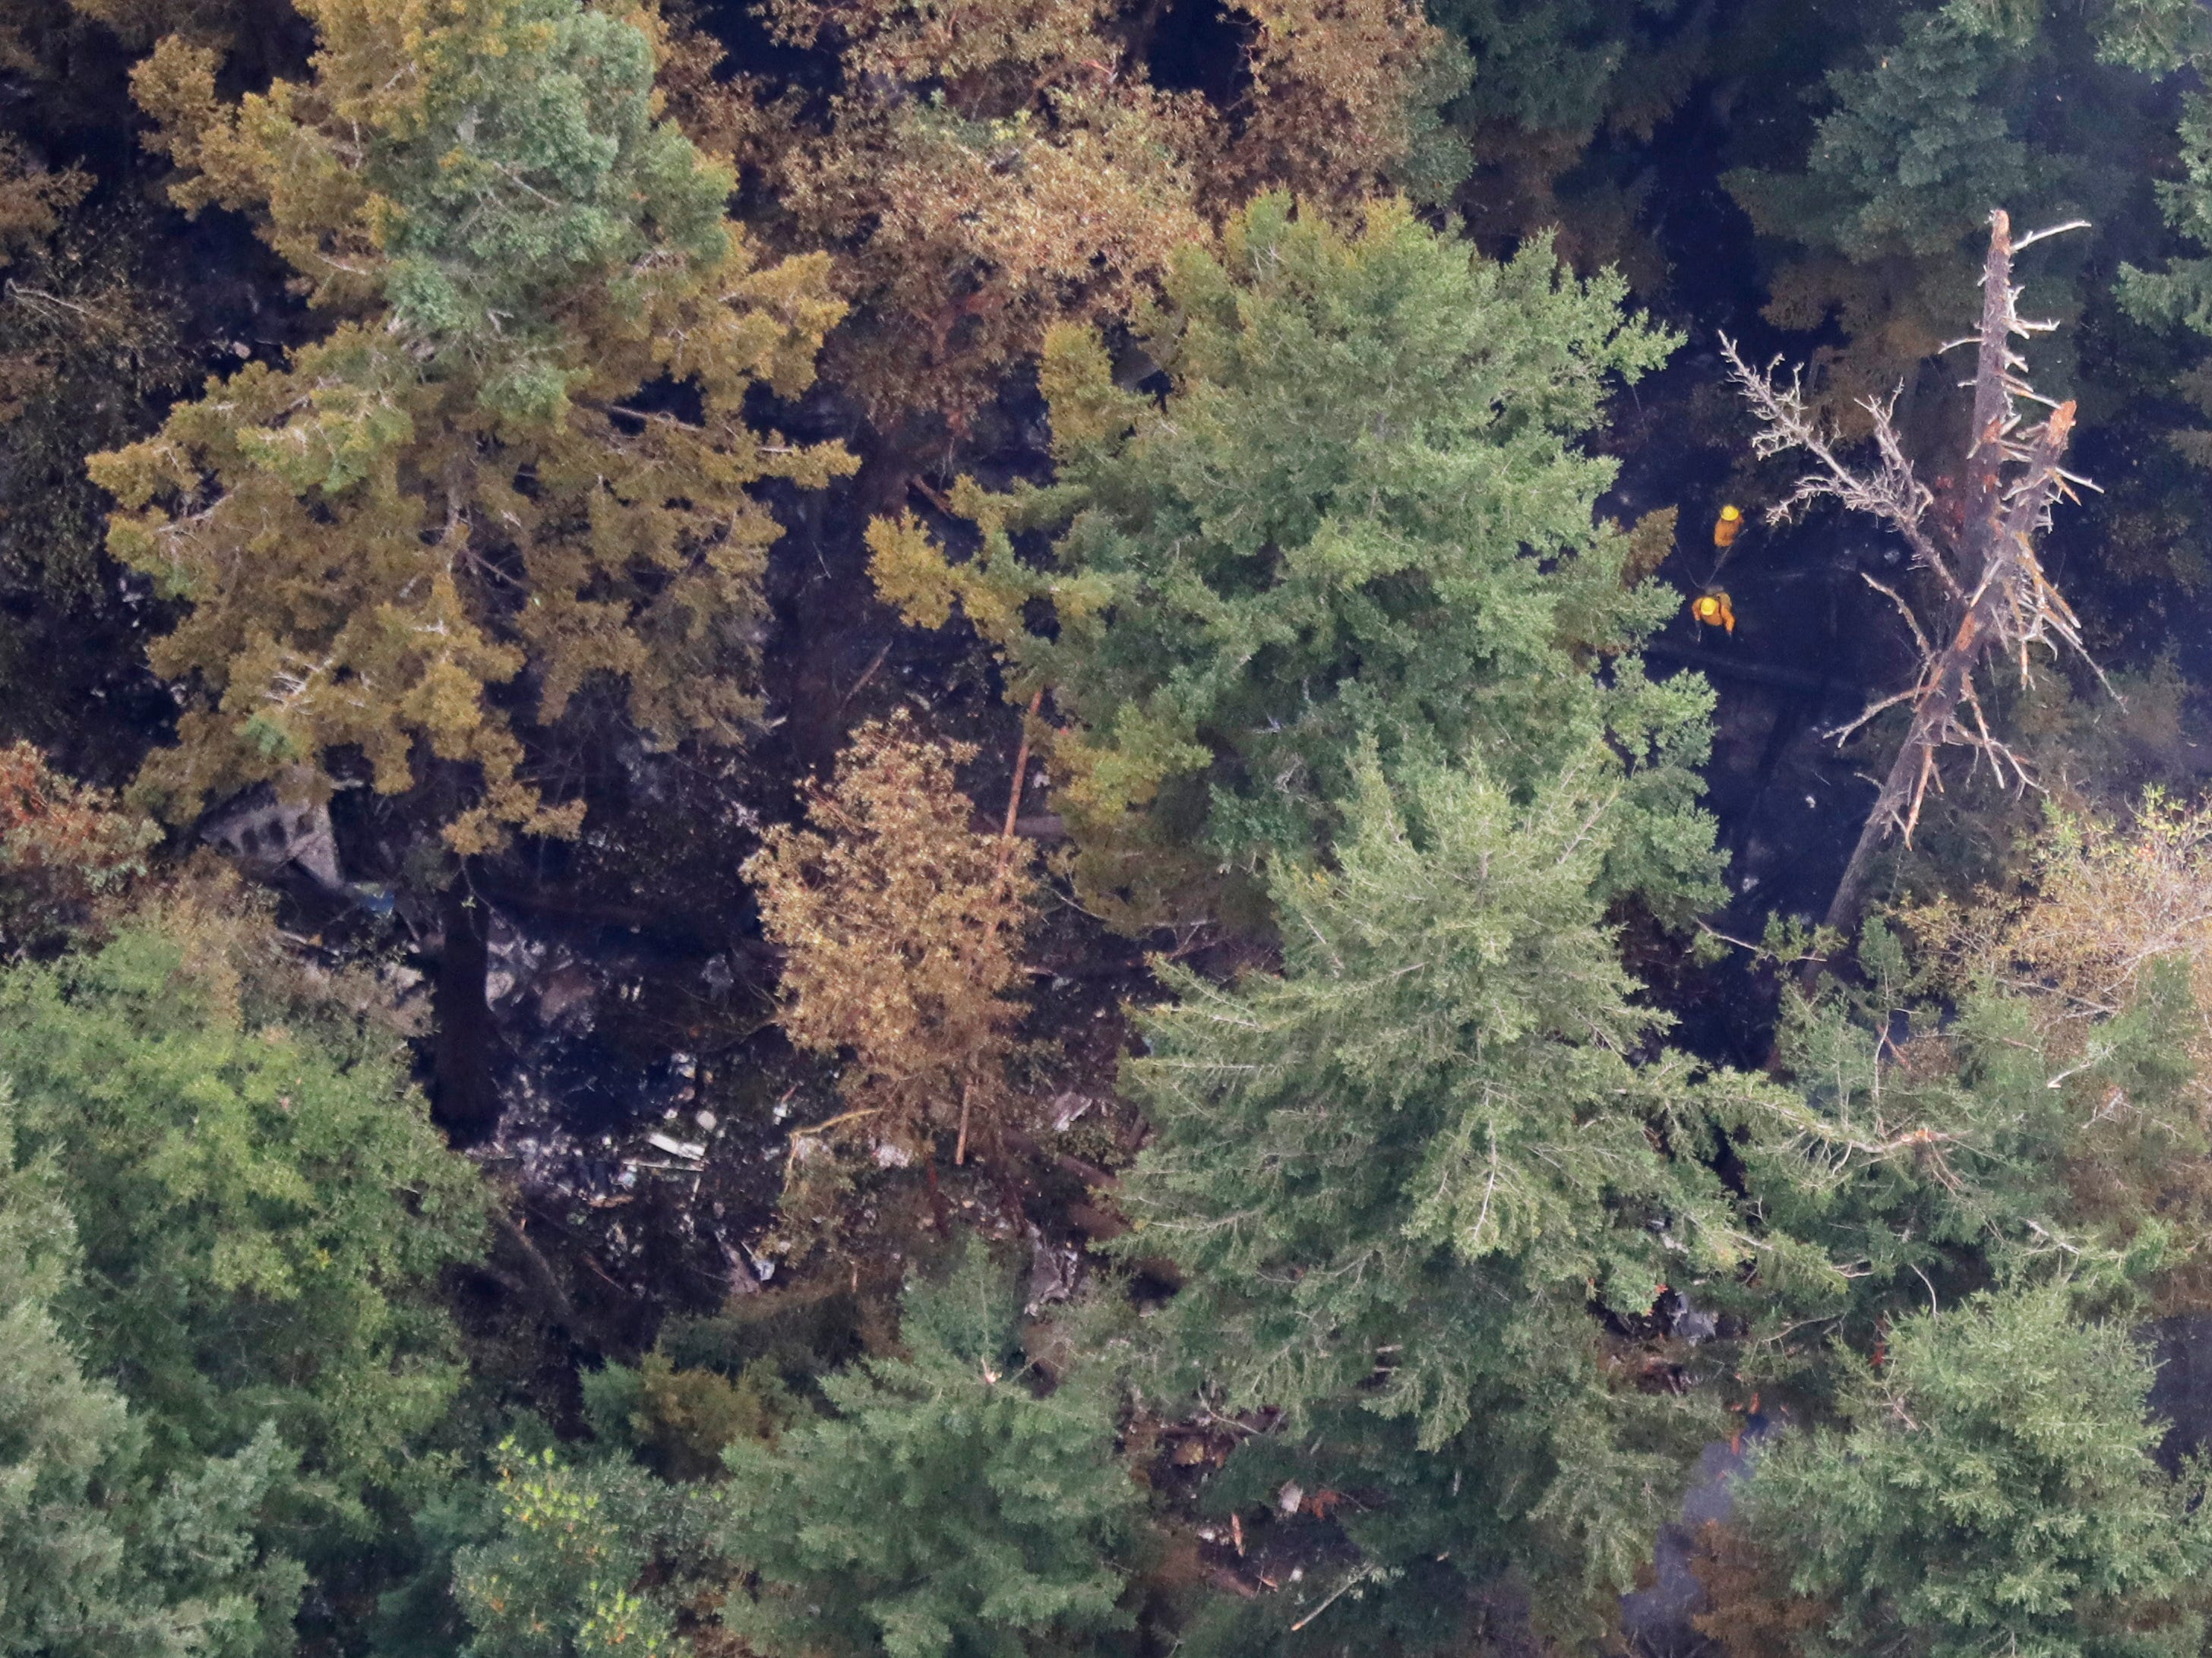 Workers wearing yellow hard hats are seen at upper right from the air Saturday, Aug. 11, 2018, near Steilacoom, Wash., at the site on Ketron Island in Washington state where a Horizon Air turboprop plane crashed after it was stolen from Sea-Tac International Airport Friday. Investigators were working to find out how an airline employee stole the plane and crashed it after being chased by military jets that were quickly scrambled to intercept the aircraft.